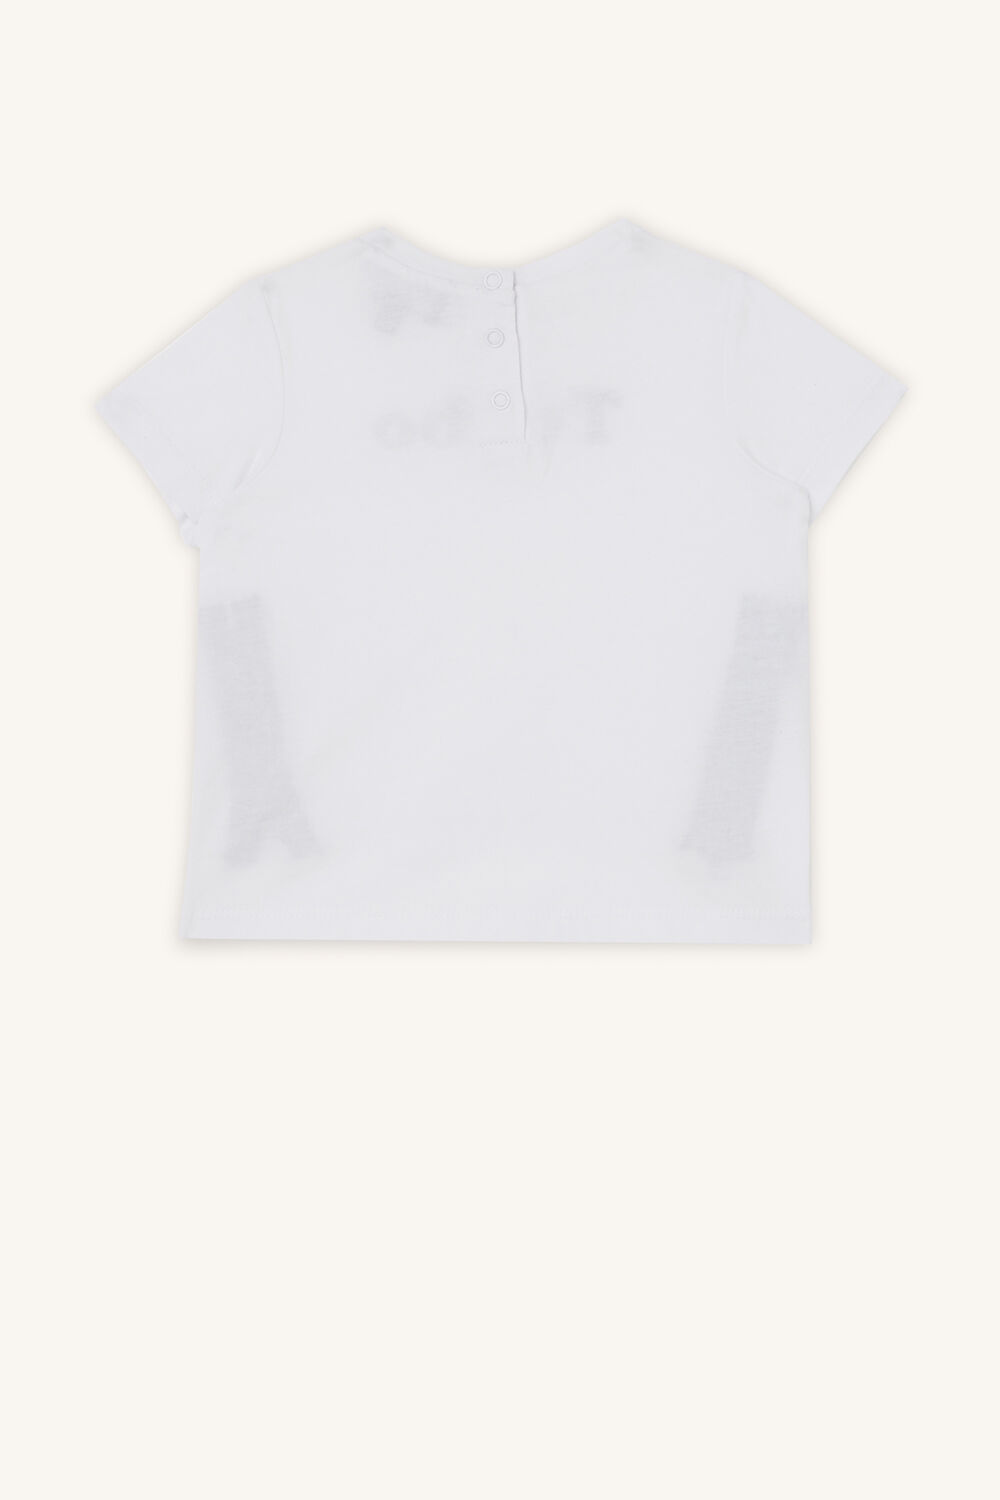 TURBO TEE in colour BRIGHT WHITE